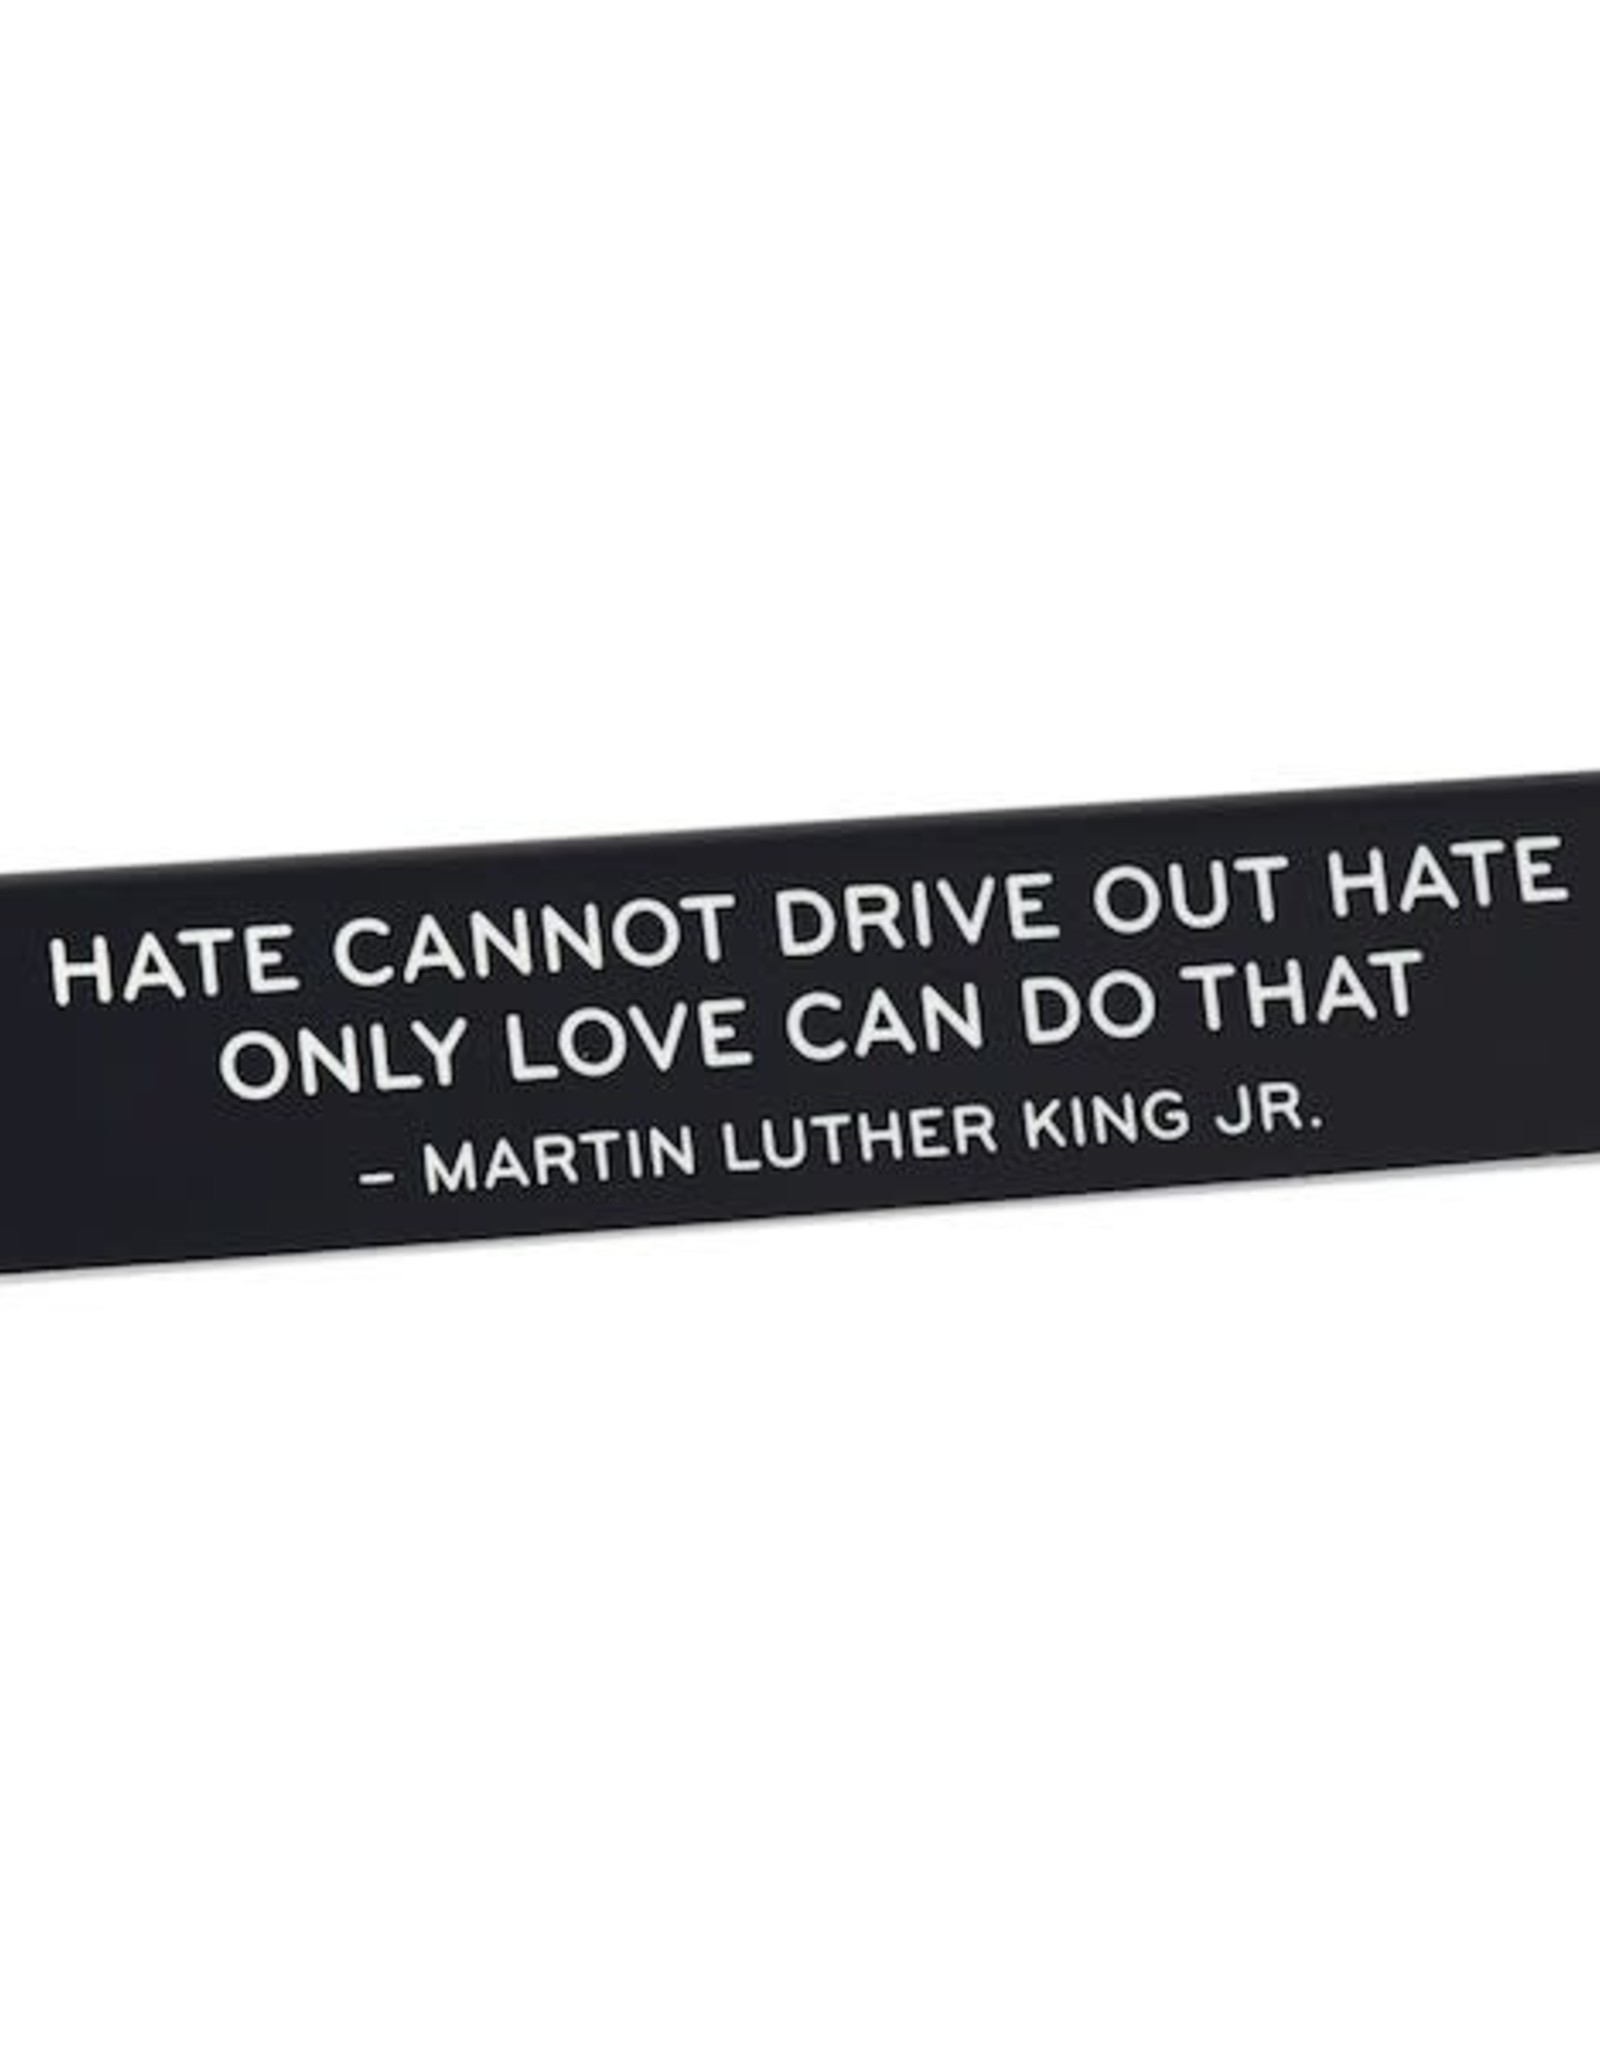 THE FOUND THE FOUND HATE CANNOT DRIVE OUT HATE DESK SIGN